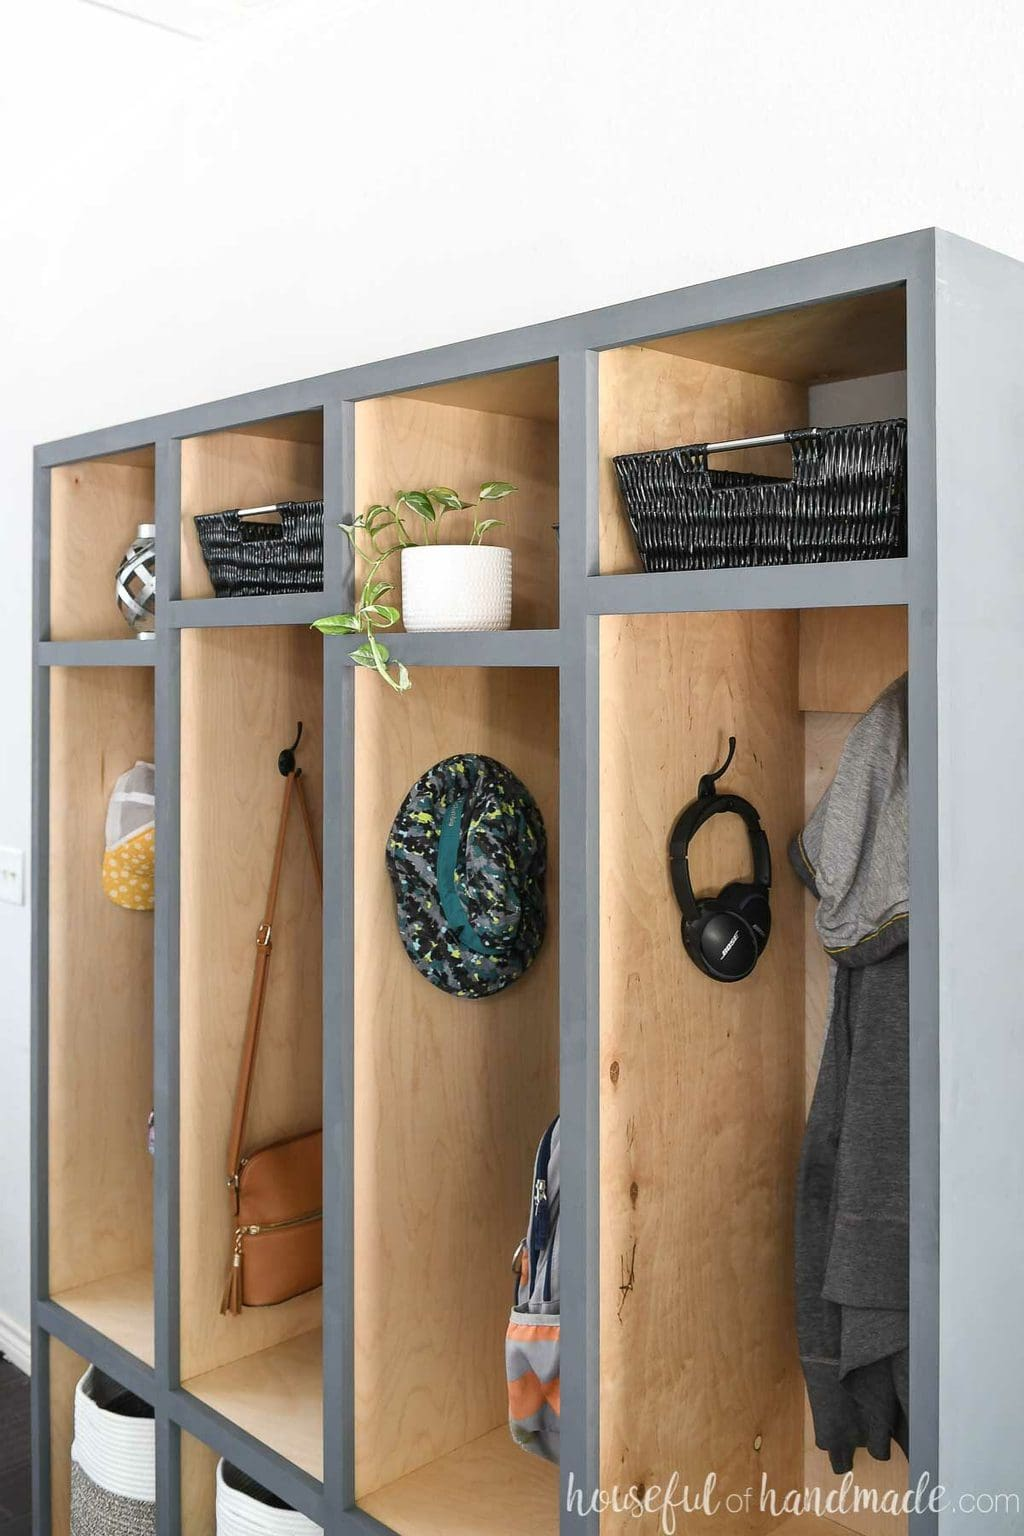 Close up of the upper shelves in the mudroom storage lockers with storage baskets and decor in them.